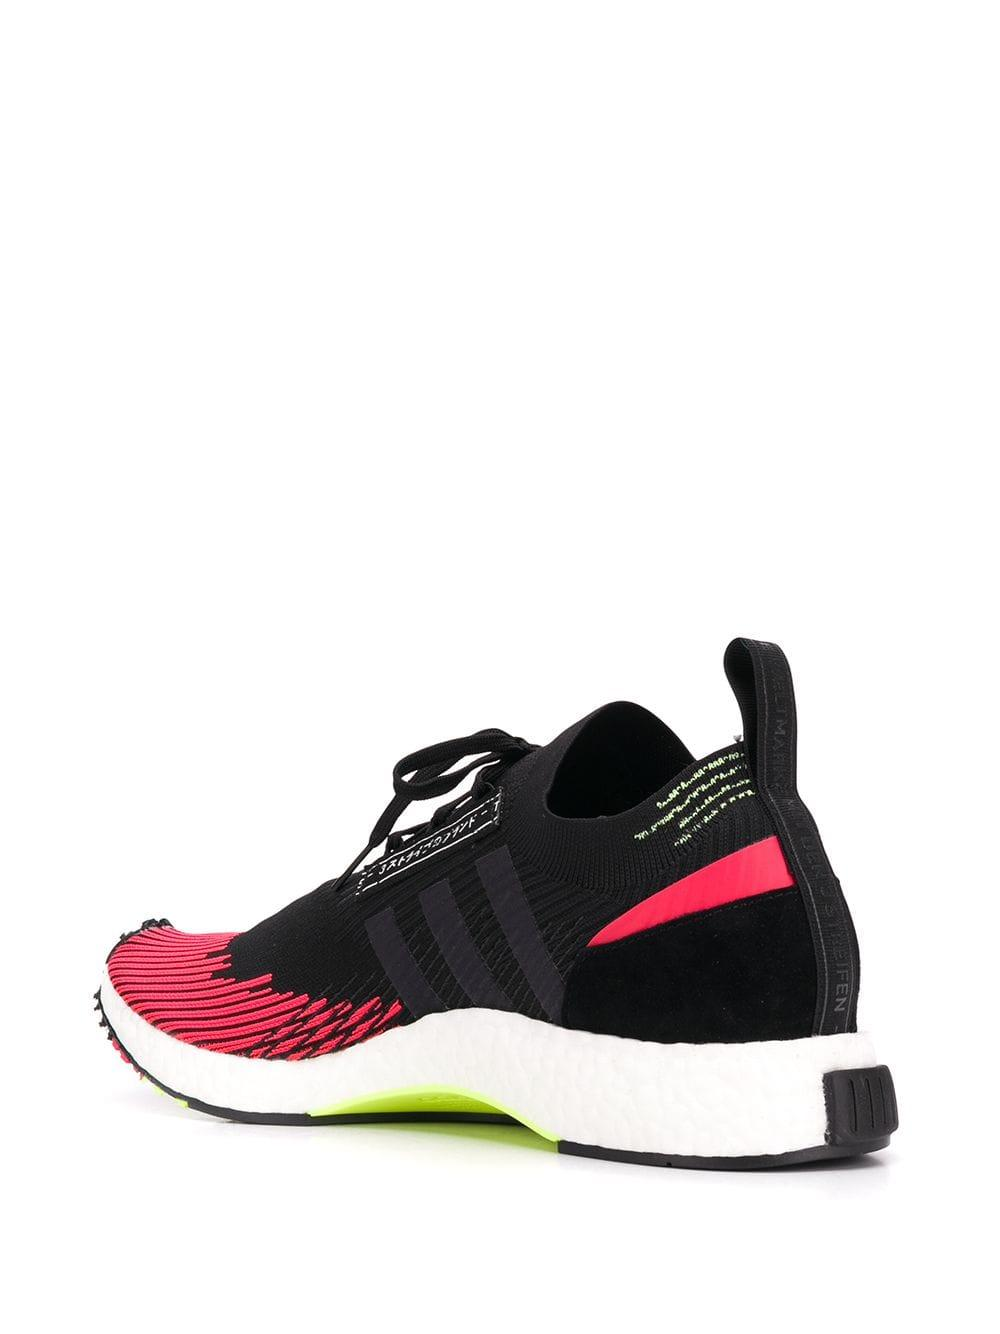 fc3a9eafc5a29 Adidas - Black And Red Nmd Racer Solar Sneakers for Men - Lyst. View  fullscreen